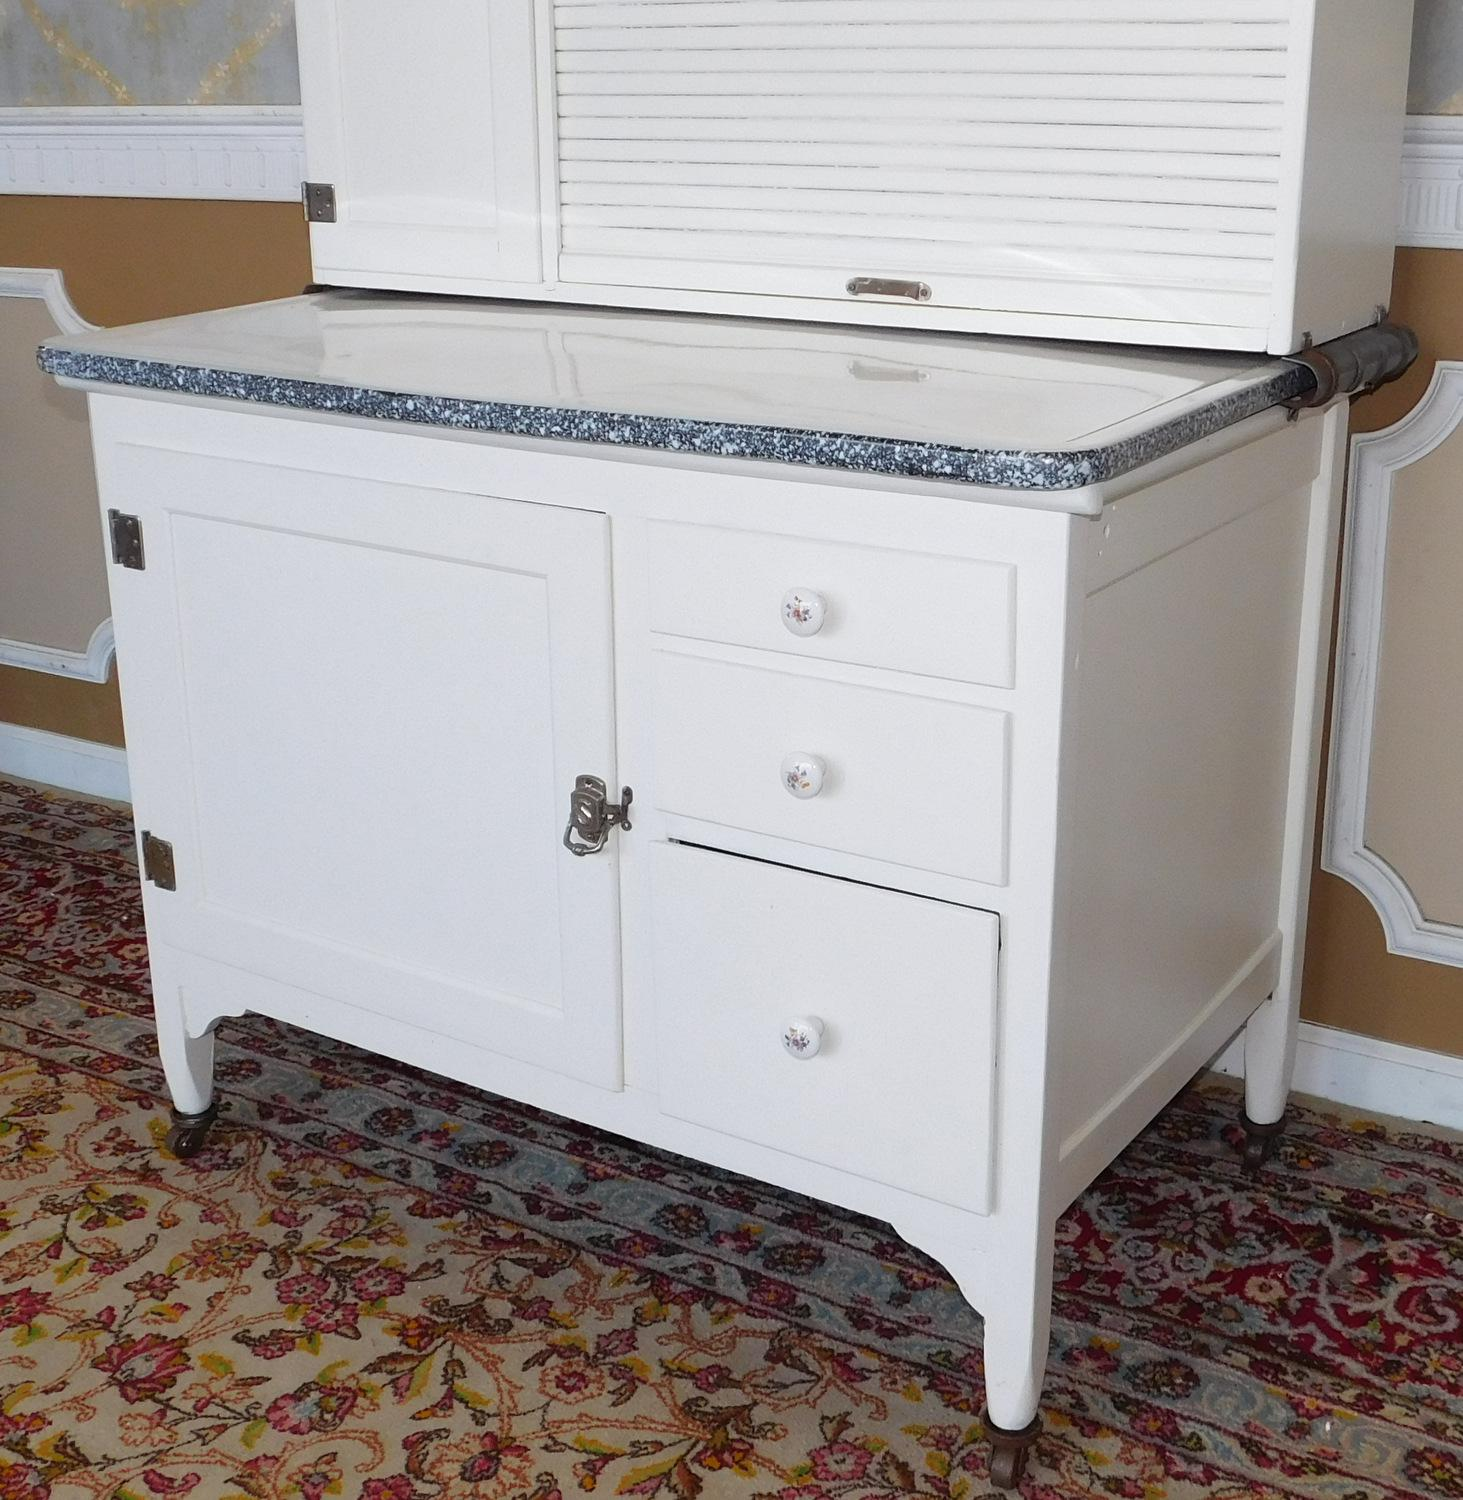 Sellers Kitchen Cabinet: Antique Sellers Restored Painted White Hoosier Kitchen